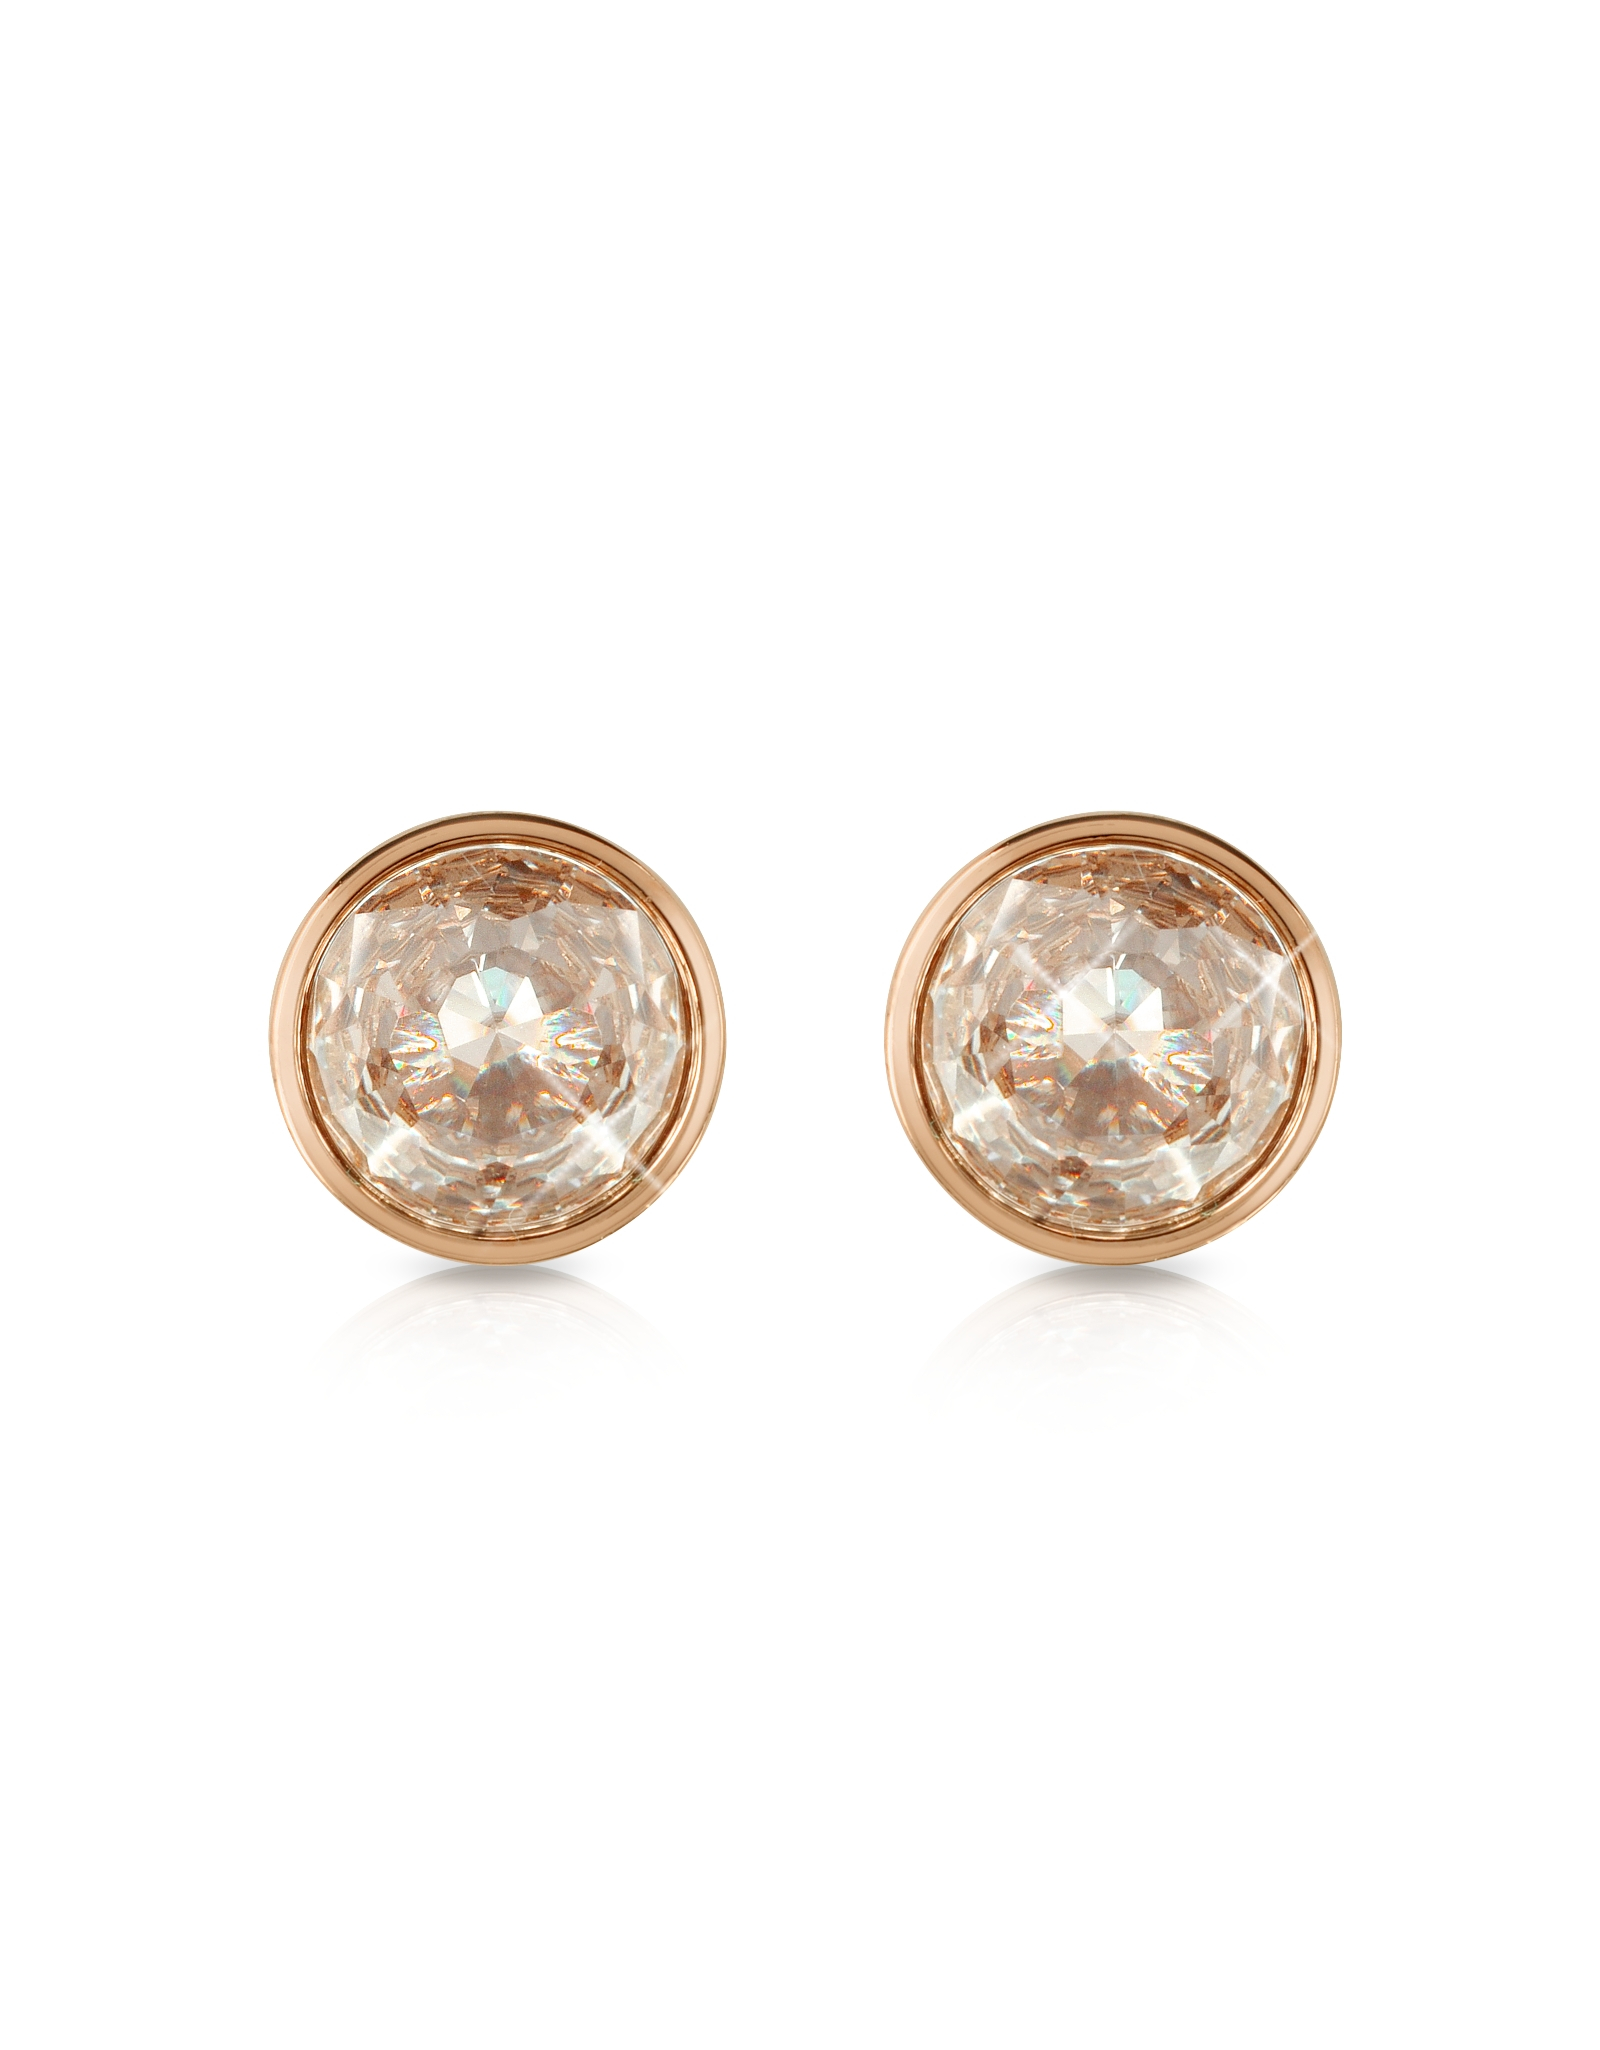 956f2663ac78 Lyst - Michael Kors Crystal Rose Gold-tone Stud Earrings in Pink